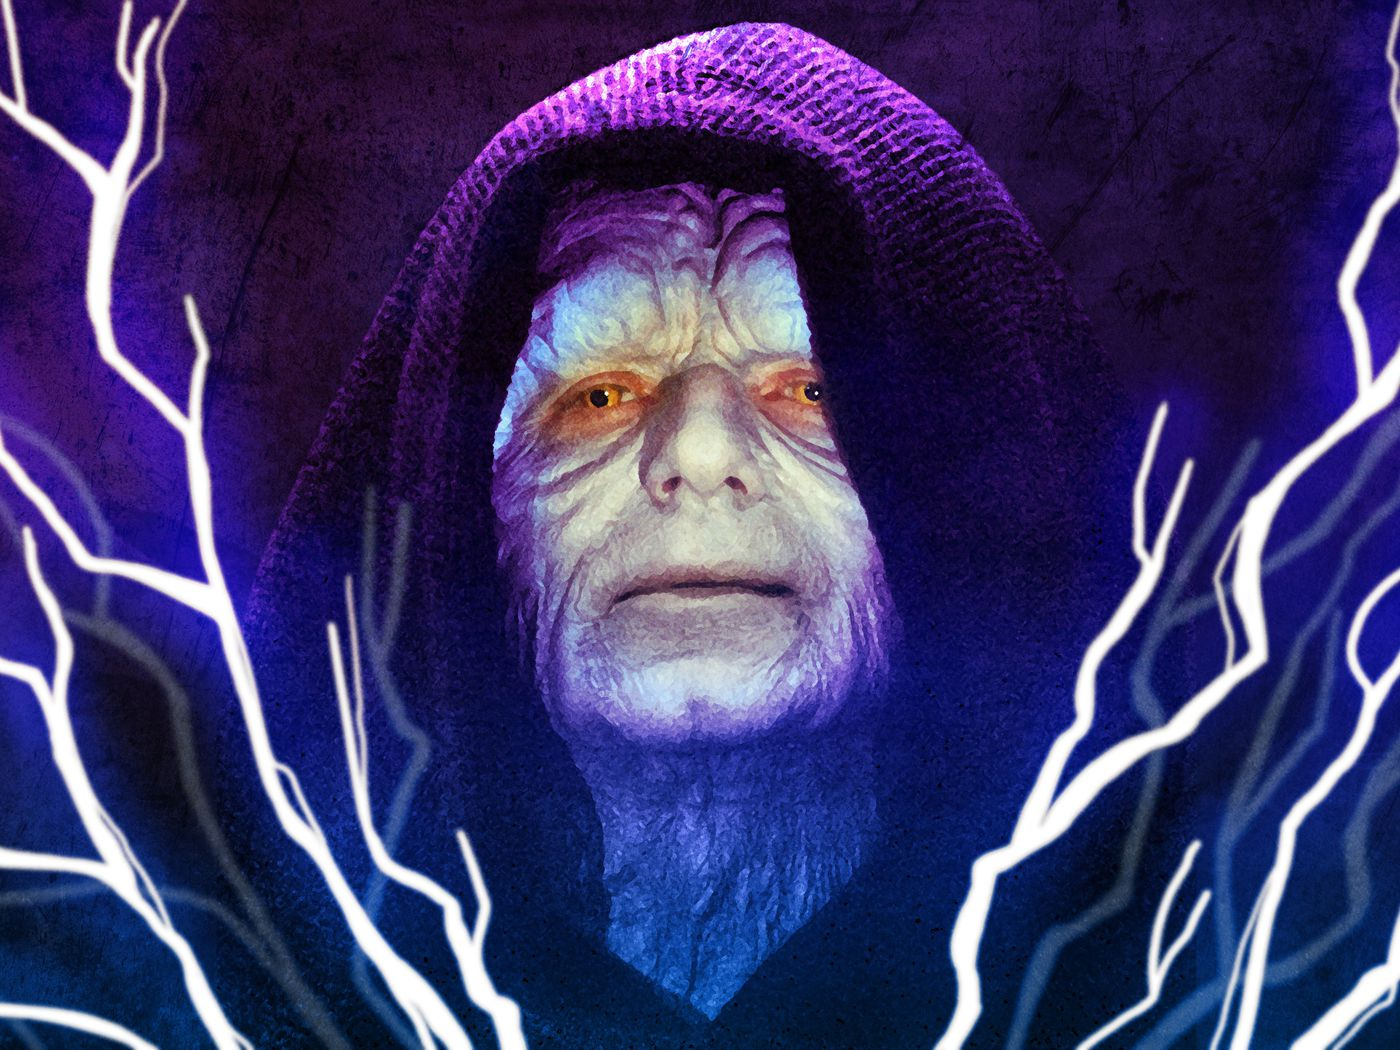 The Emperor Strikes Back Star Wars Resurrects Palpatine Again The Ringer